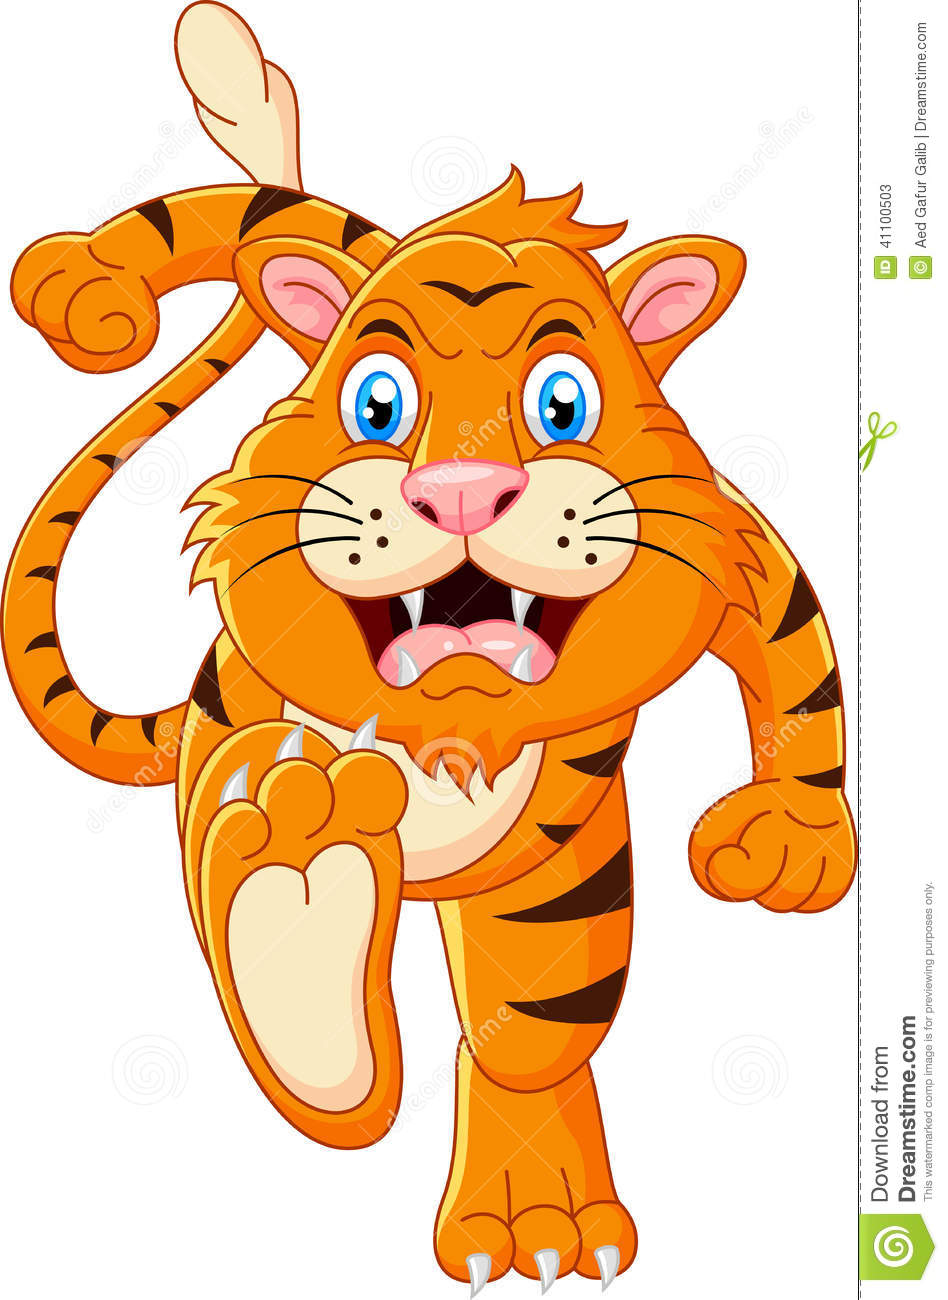 Tiger Cartoon Running Stock Vector - Image: 41100503